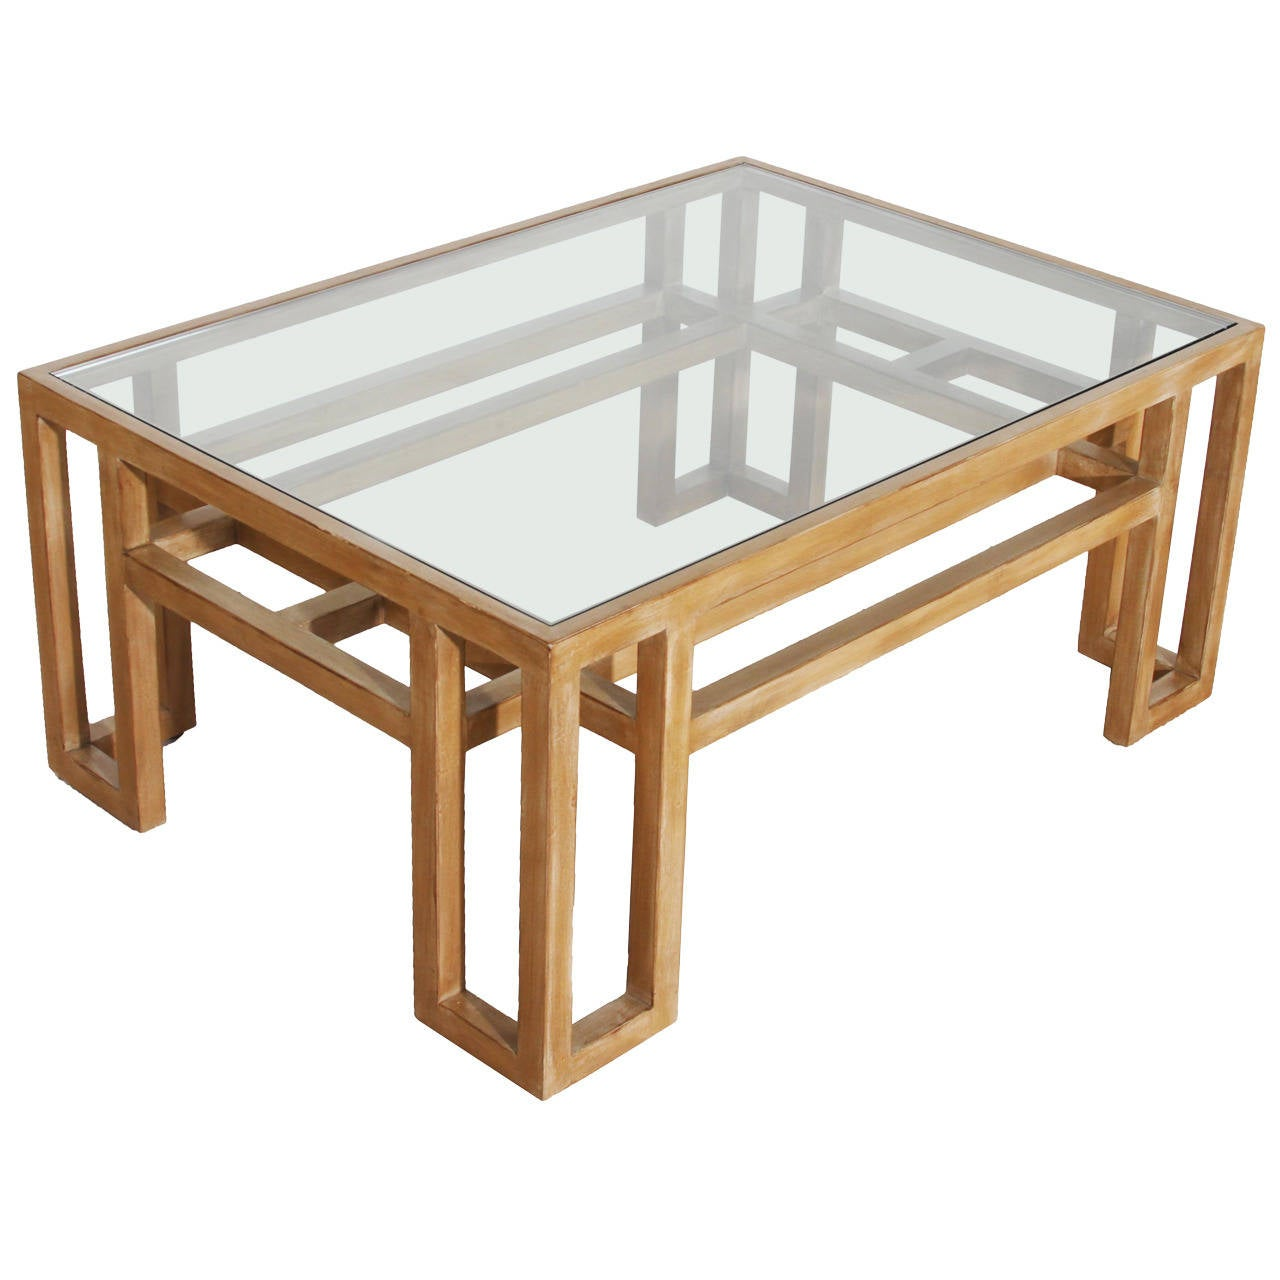 vintage wood coffee table with glass top for sale at 1stdibs